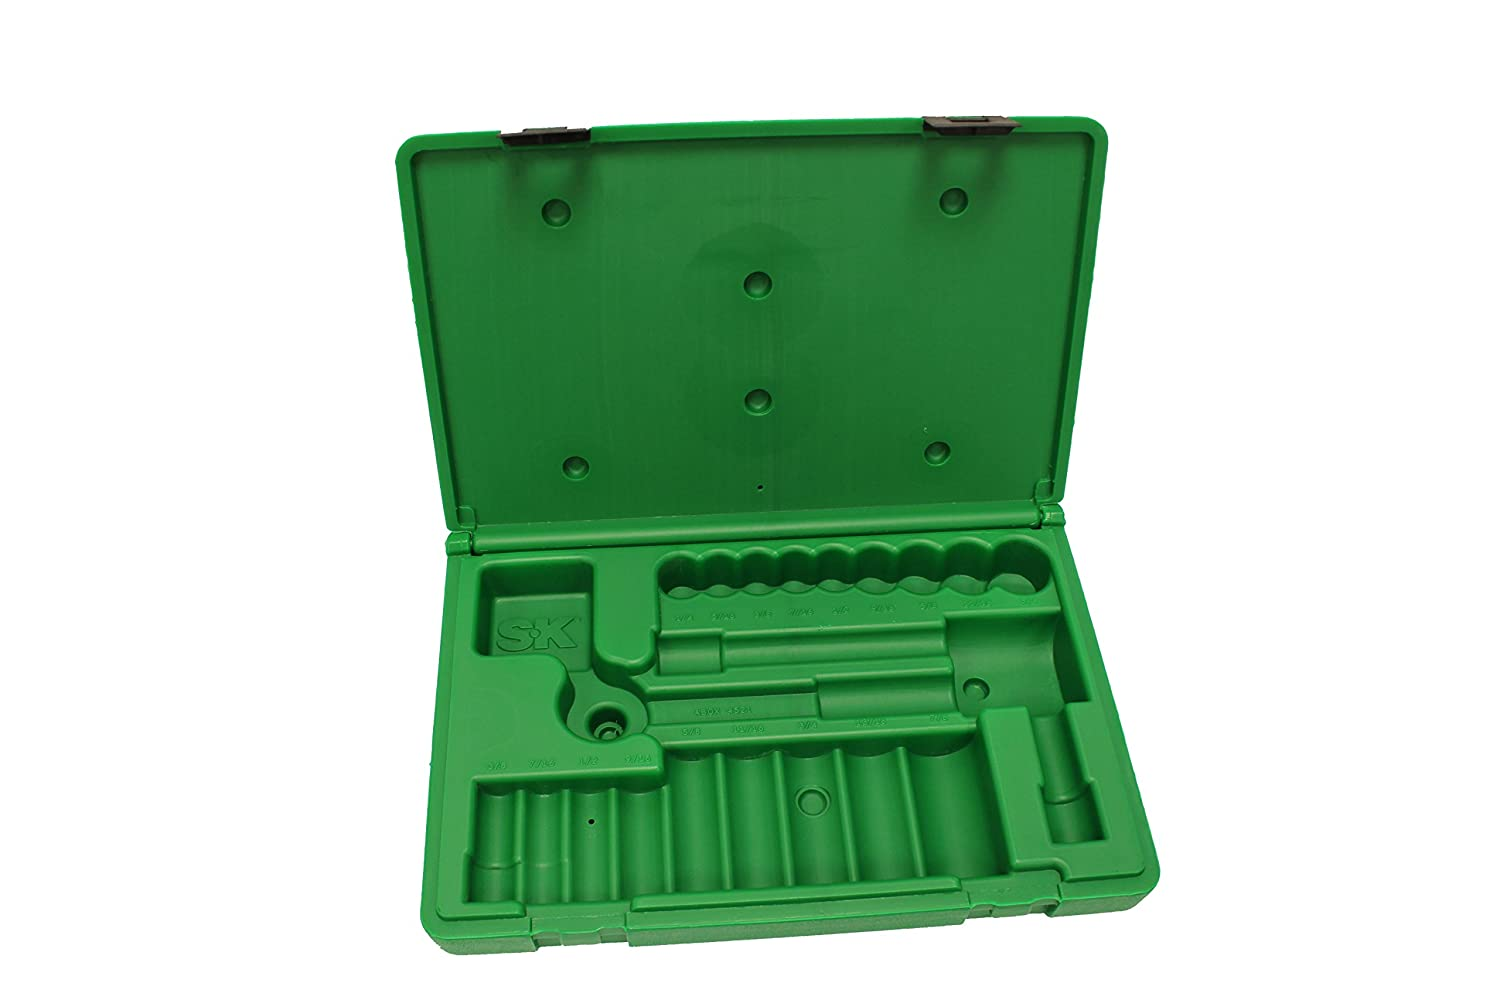 SK Hand Tool ABOX-4521 Blow-molded replacement case for 4521 and 4551 3//8 Drive Socket Sets Green